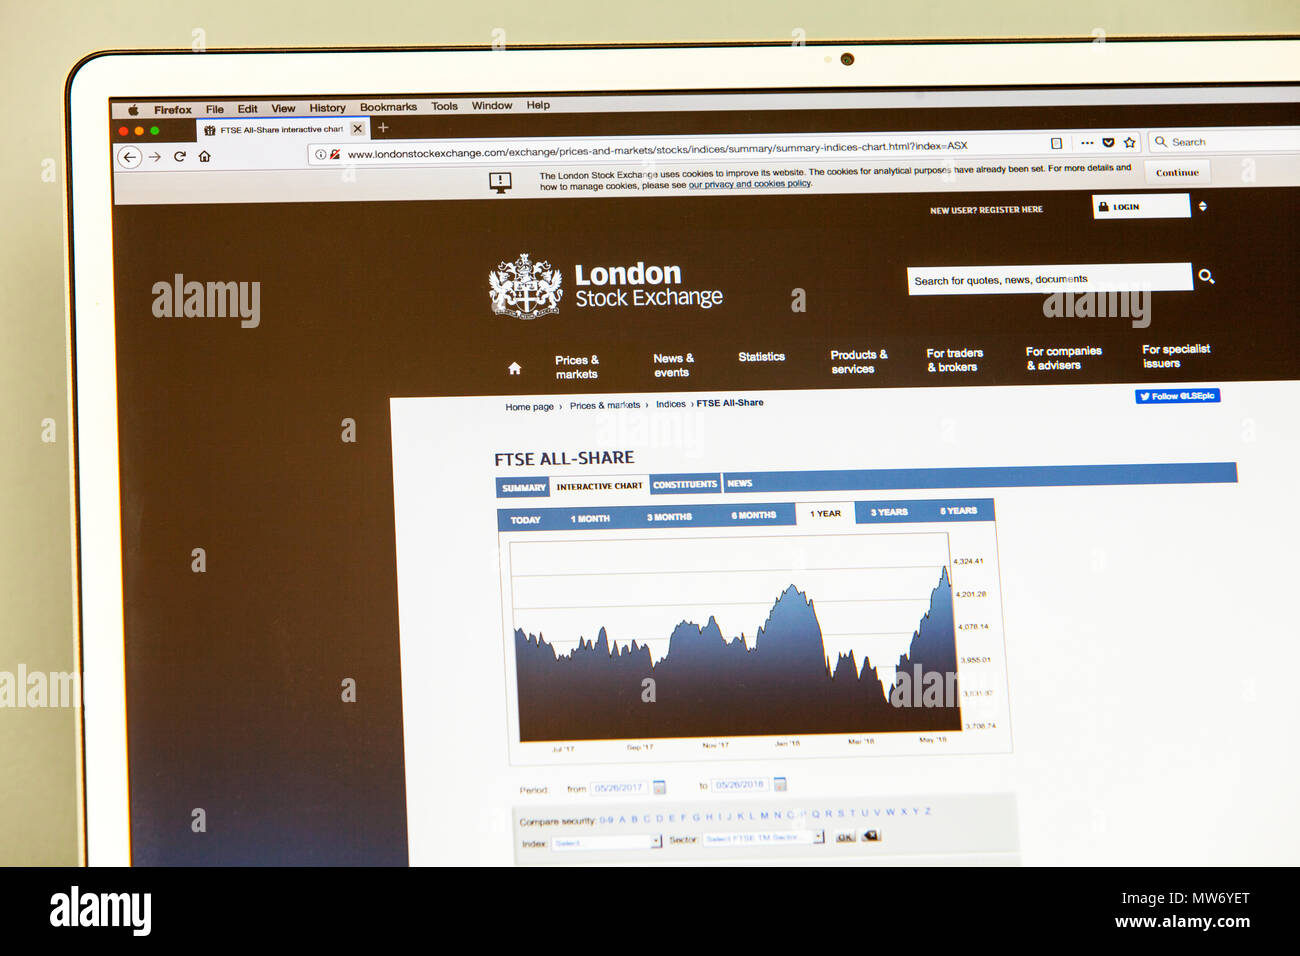 London Stock exchange website, London Stock exchange, Web page, website, internet page, homepage, web, page, pages, FTSE, stocks and shares, market - Stock Image